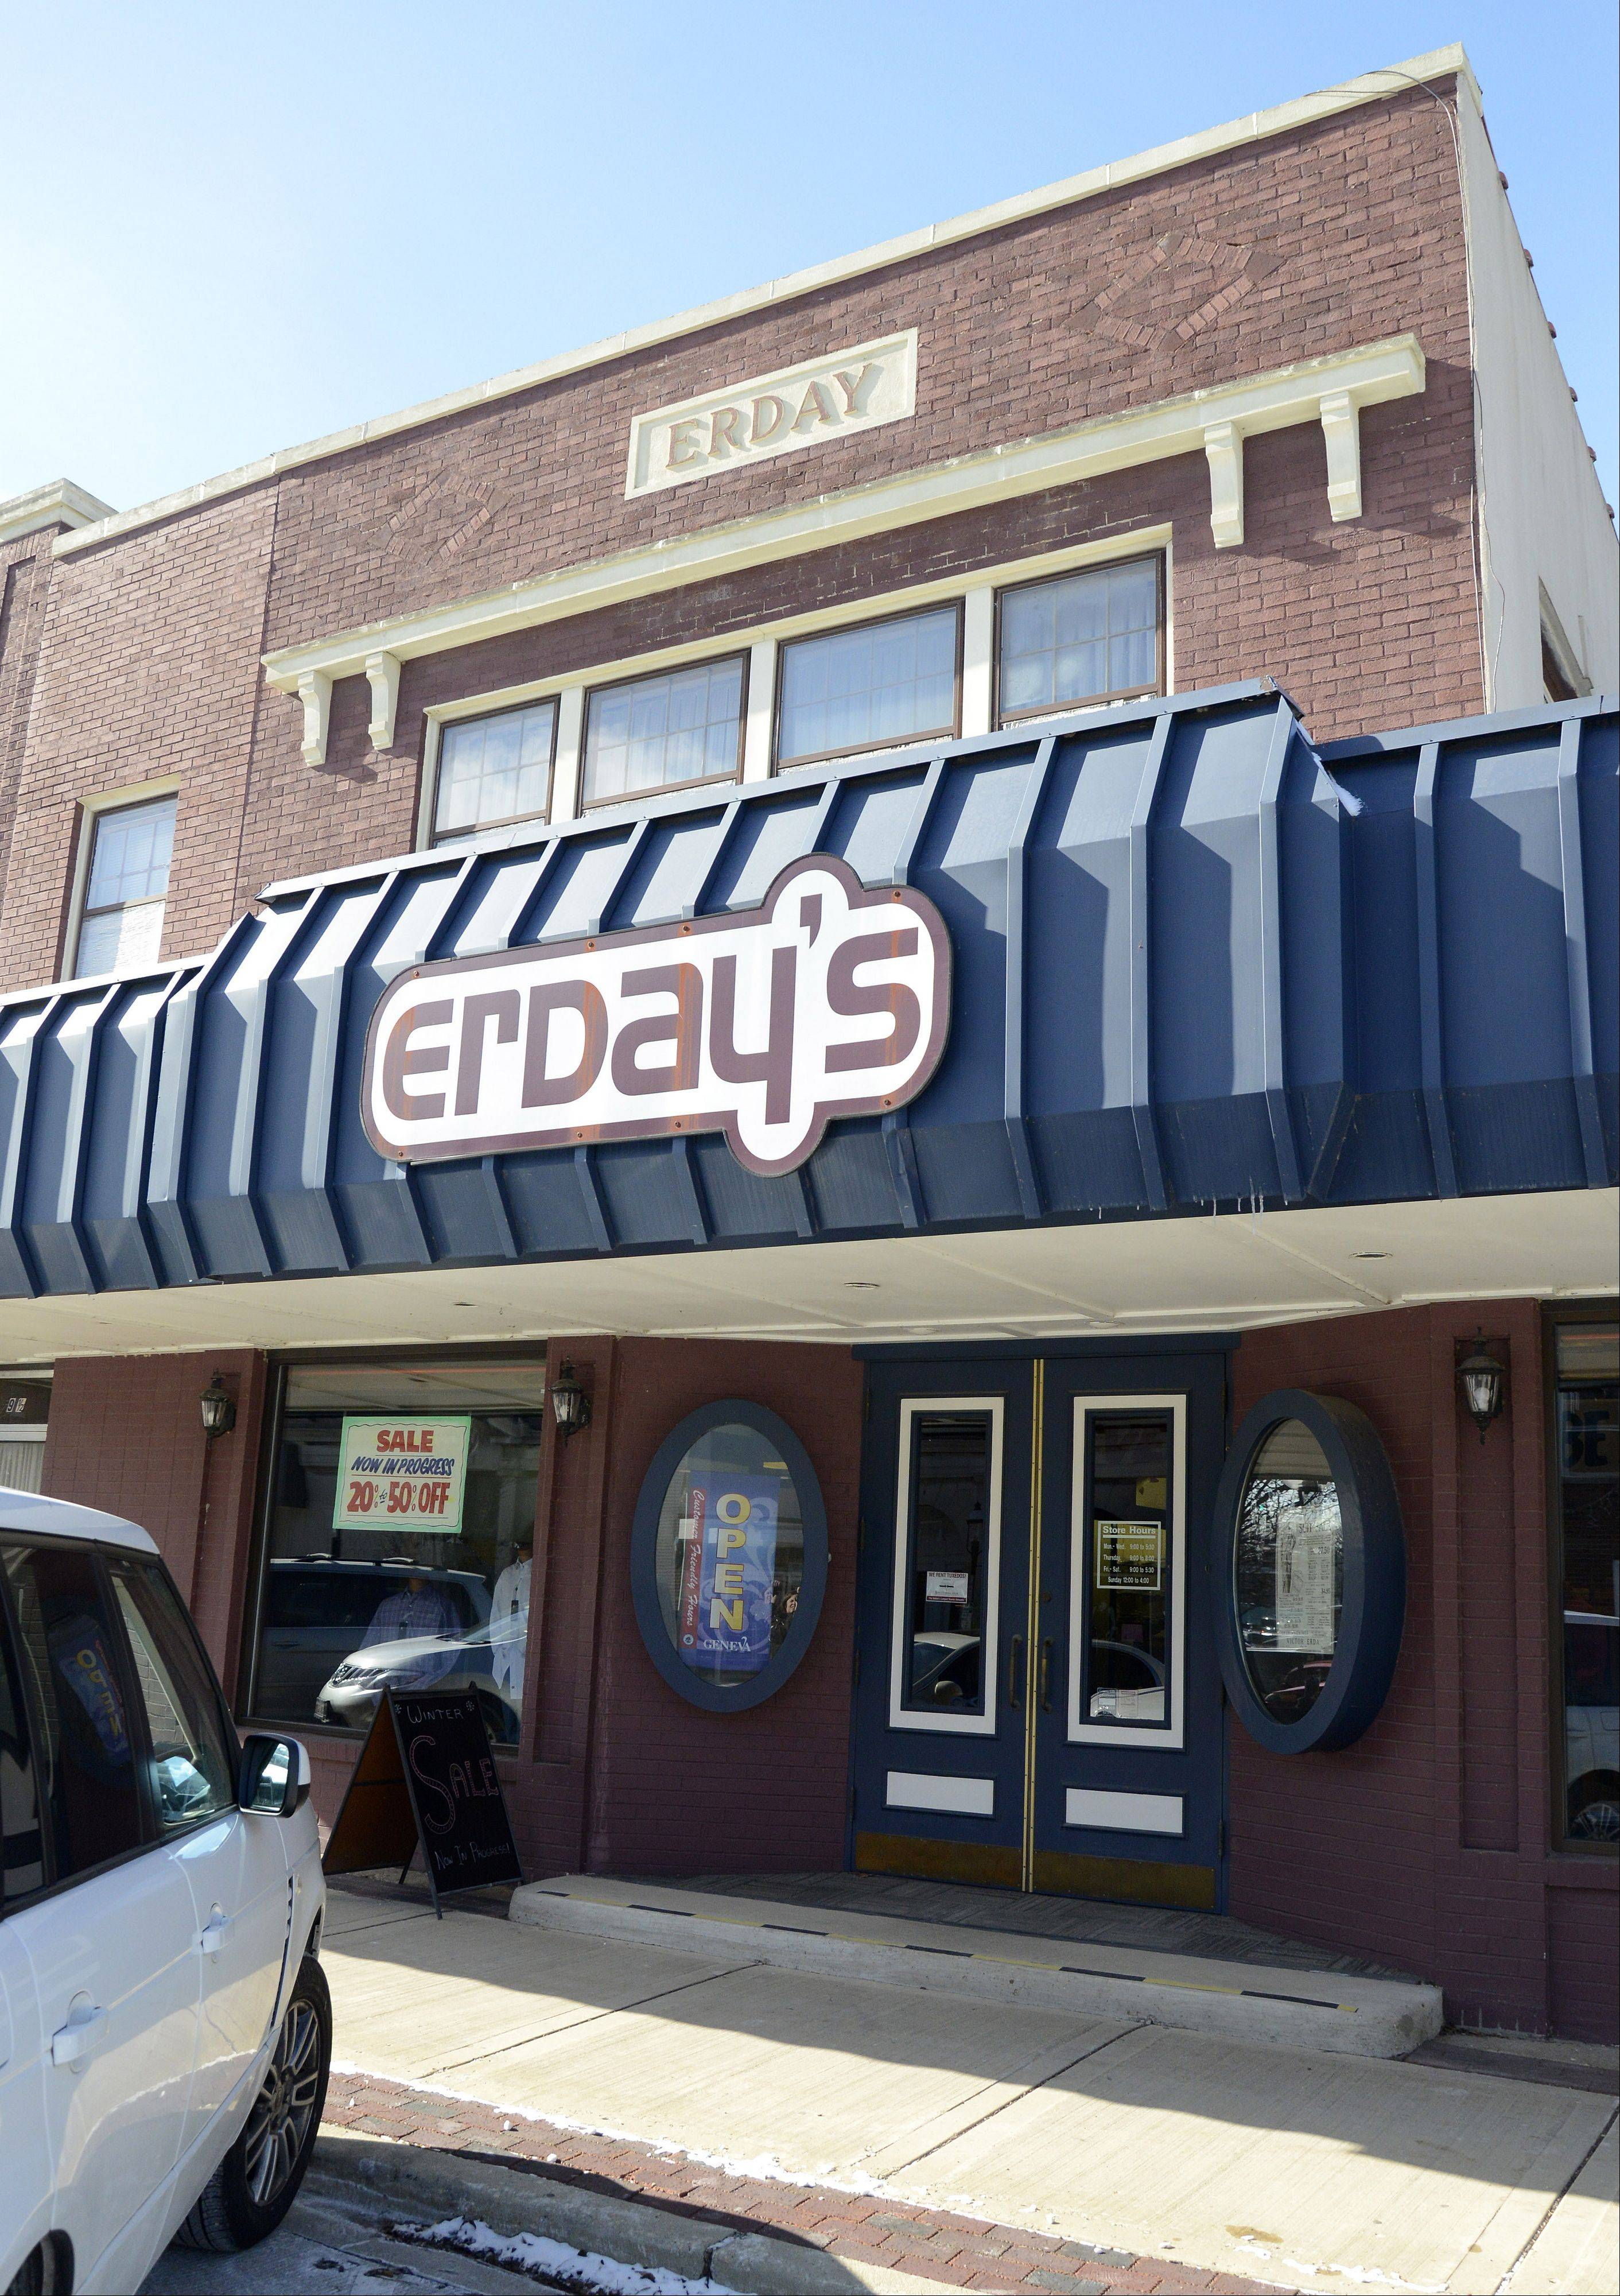 Erday's men's clothing store in Geneva is closing after nearly 88 years in business. The liquidation sale starts this week.